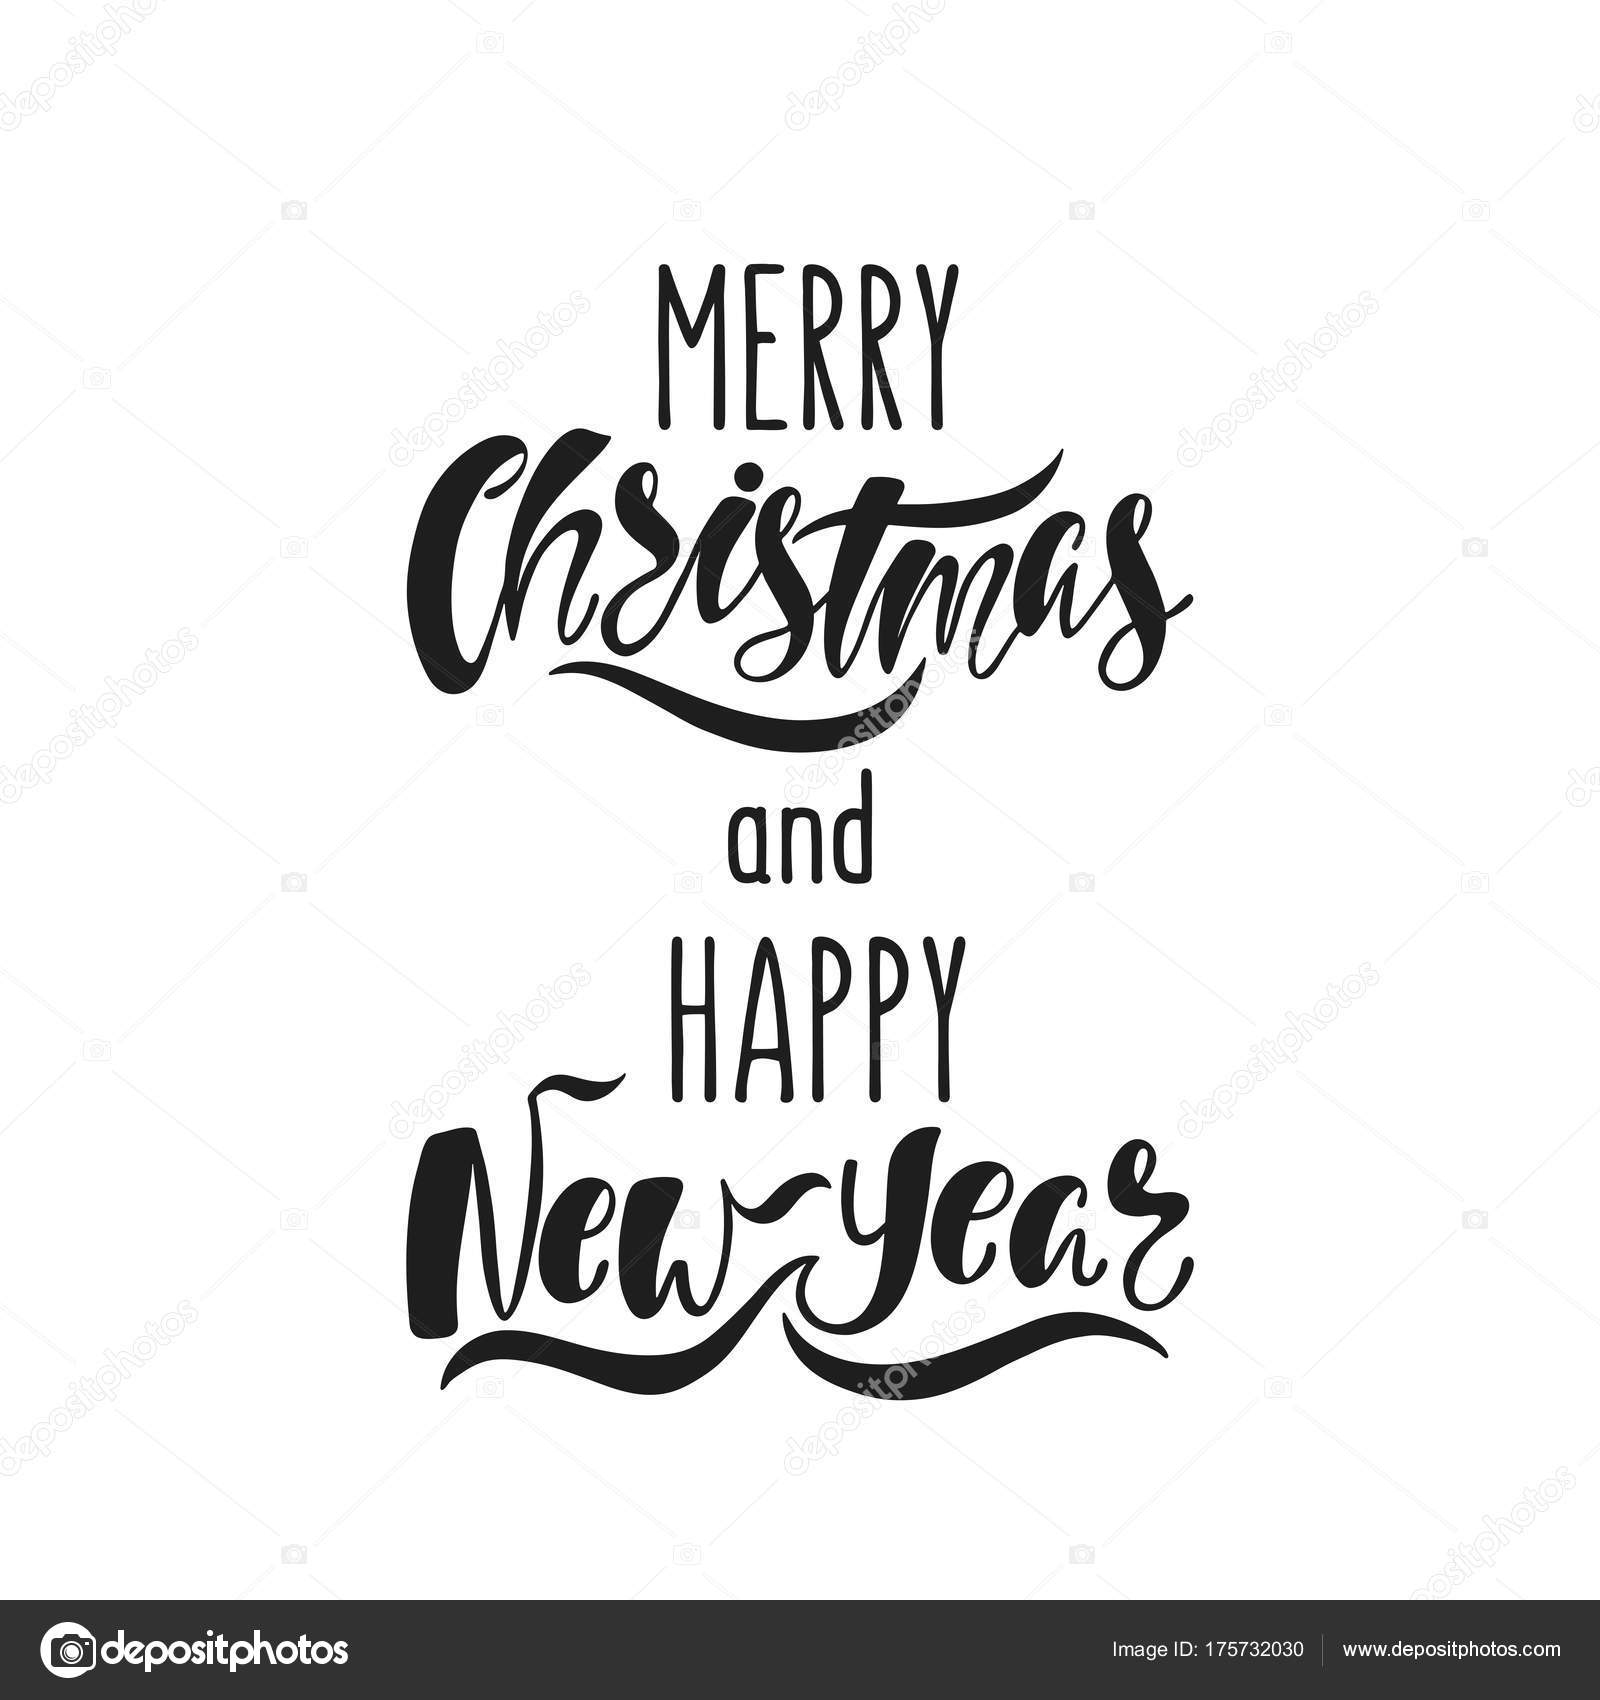 merry christmas and happy new year hand drawn calligraphy text holiday typography design black and white christmas card stock vector c maroshka 175732030 https depositphotos com 175732030 stock illustration merry christmas and happy new html